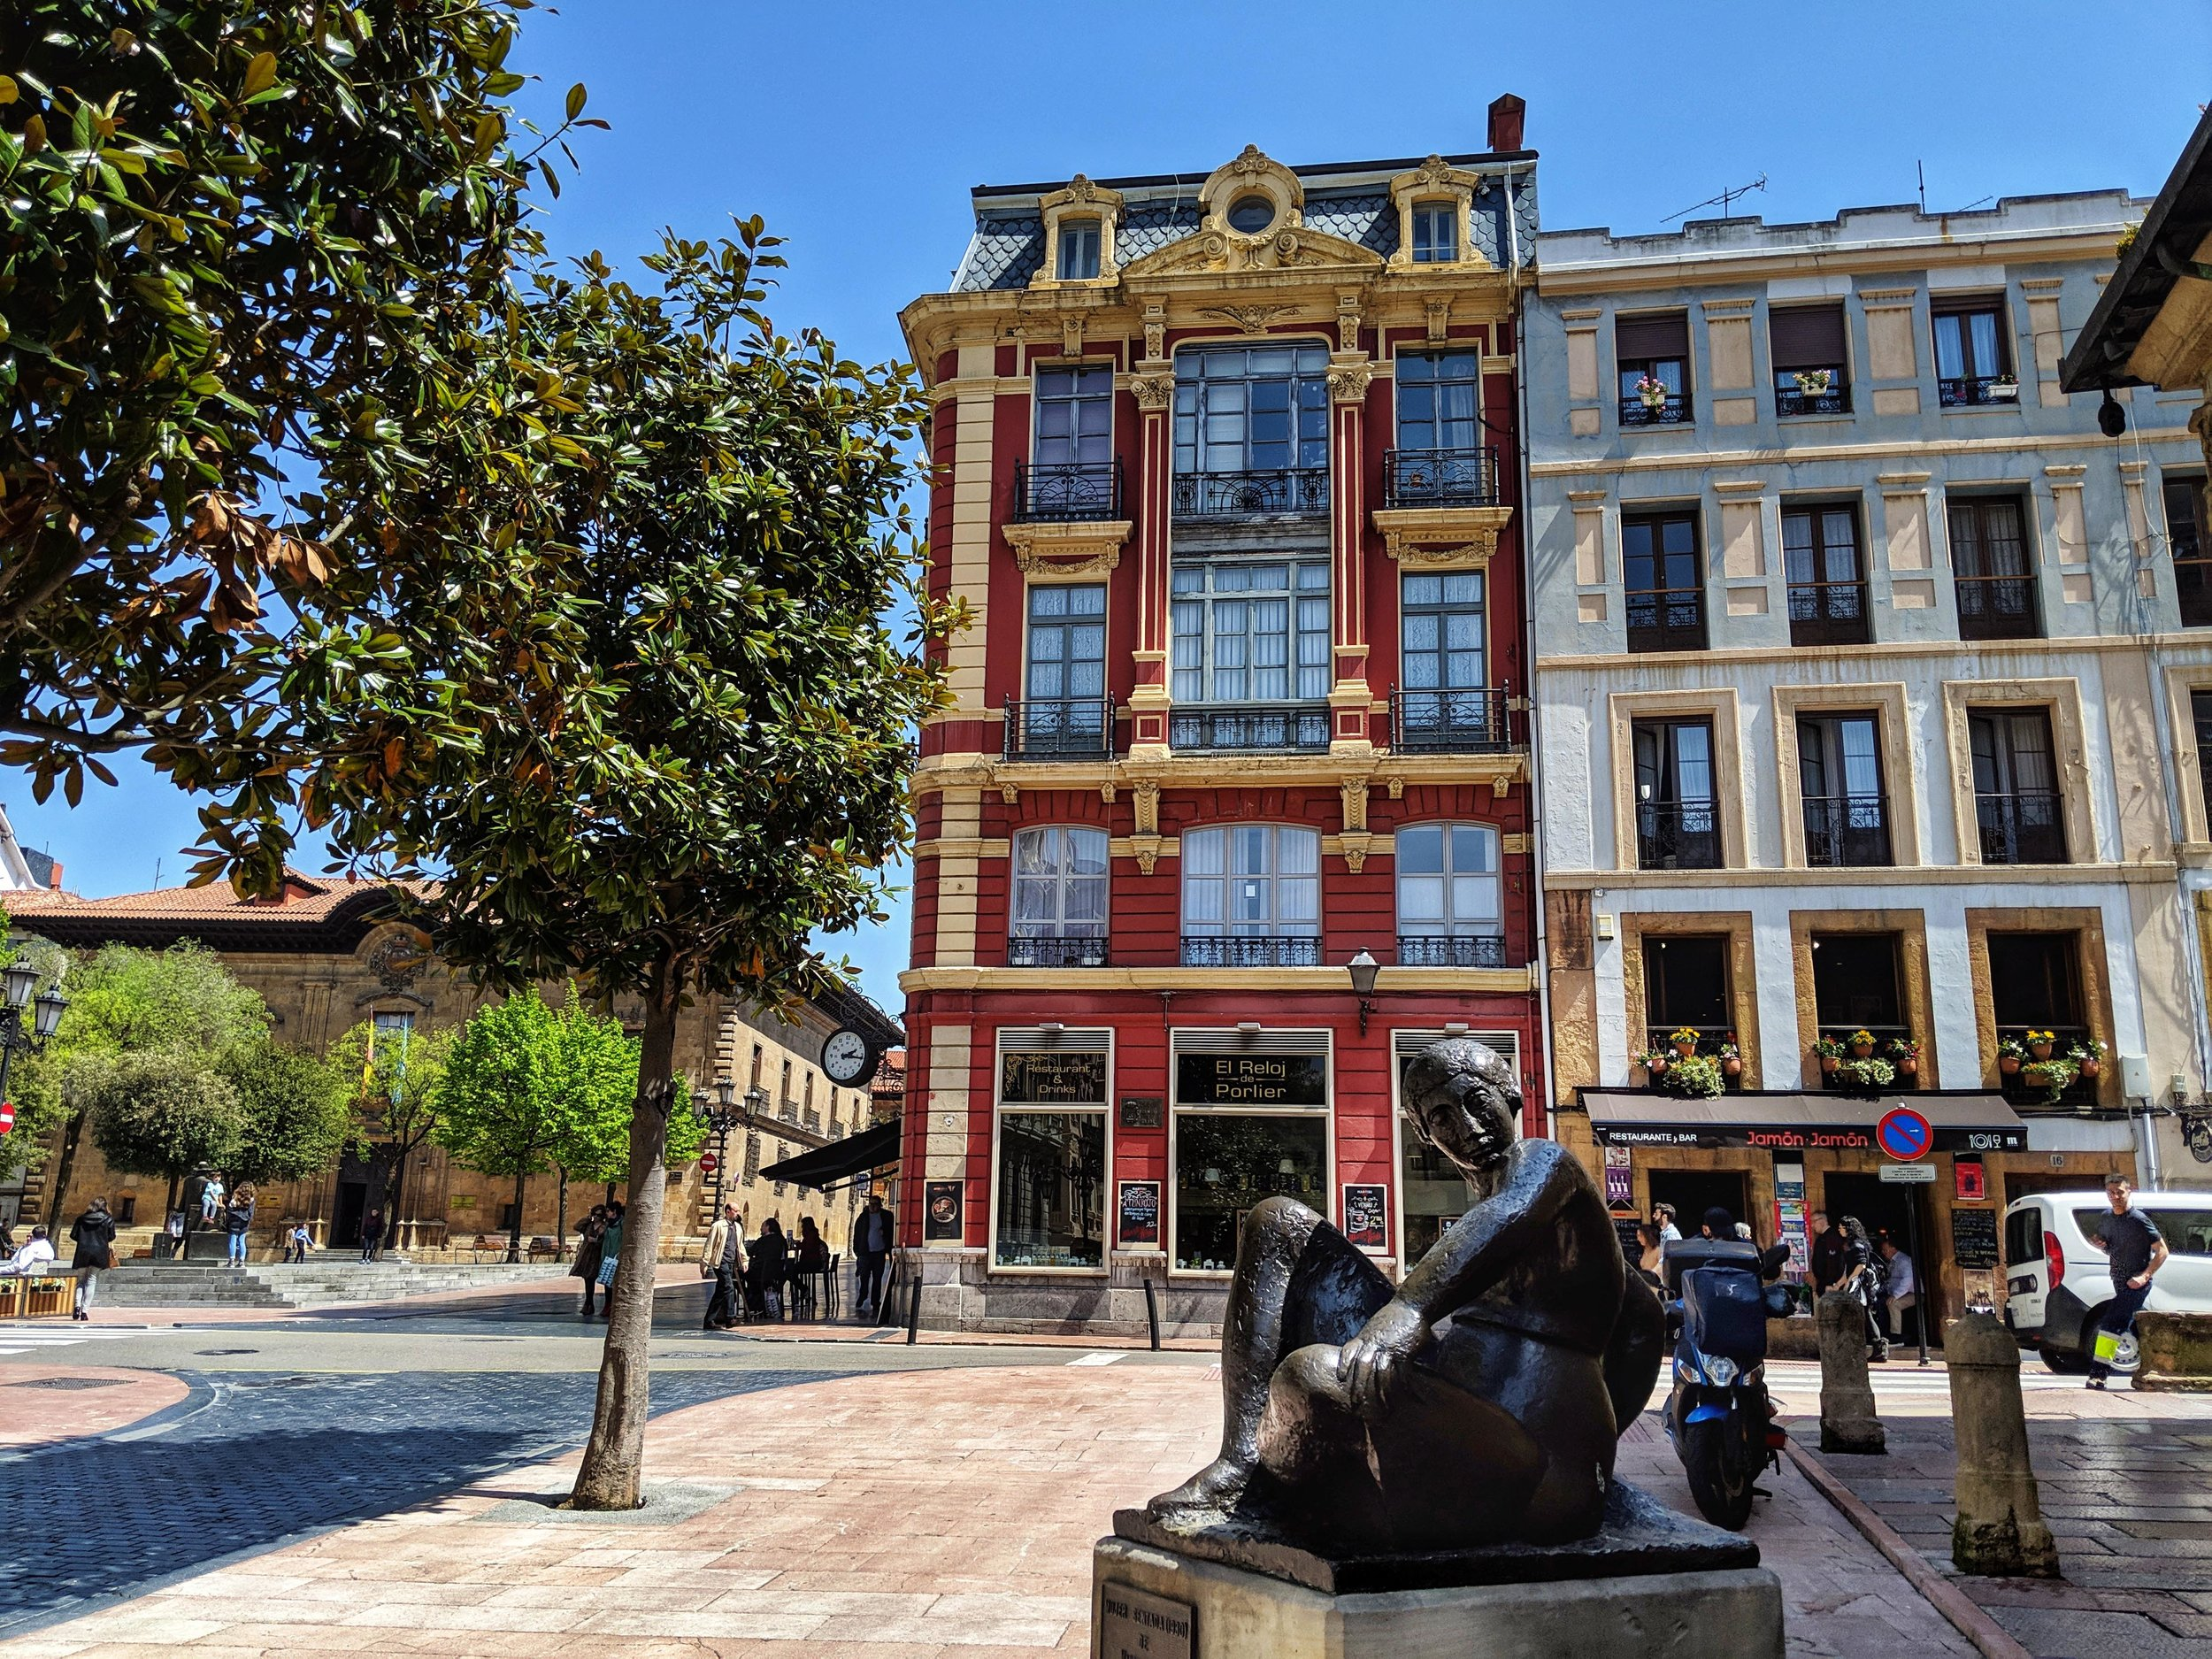 Beautiful Architecture in Oviedo